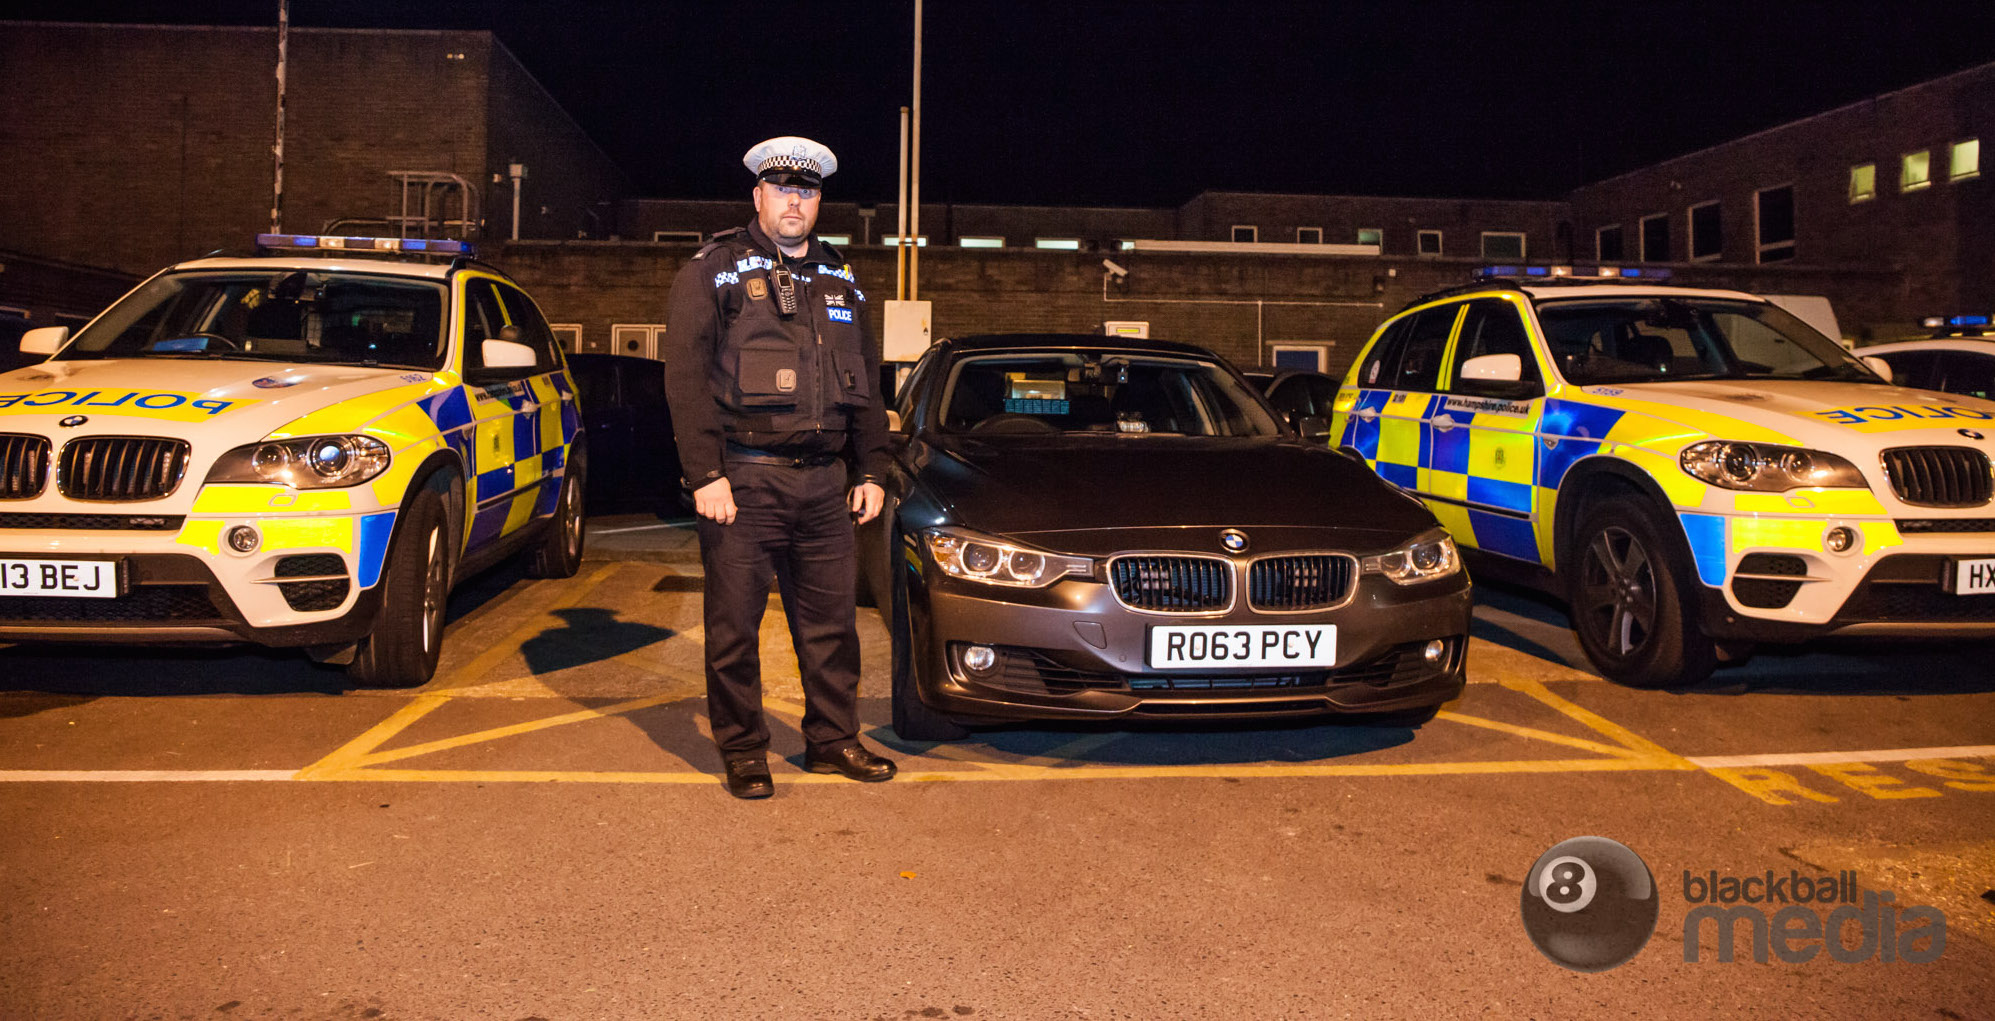 How To Spot One Of The Latest Unmarked Police Cars